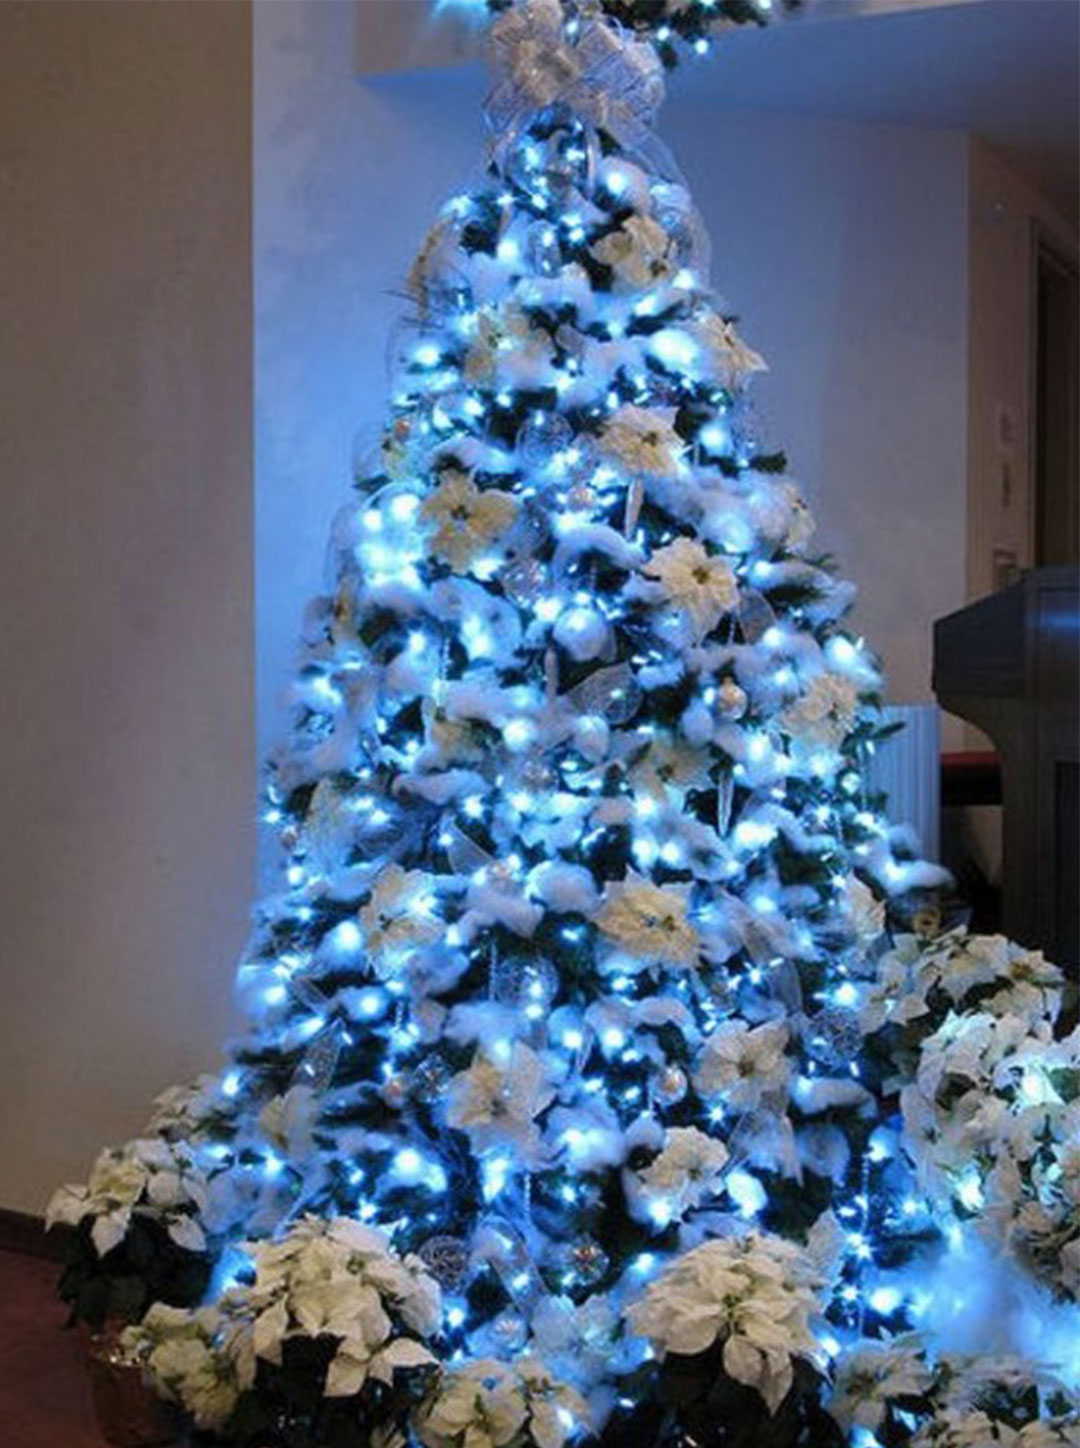 29 Inspirational Christmas Tree Decorating Ideas 2018     2019 with     christmas tree decorating ideas 2017